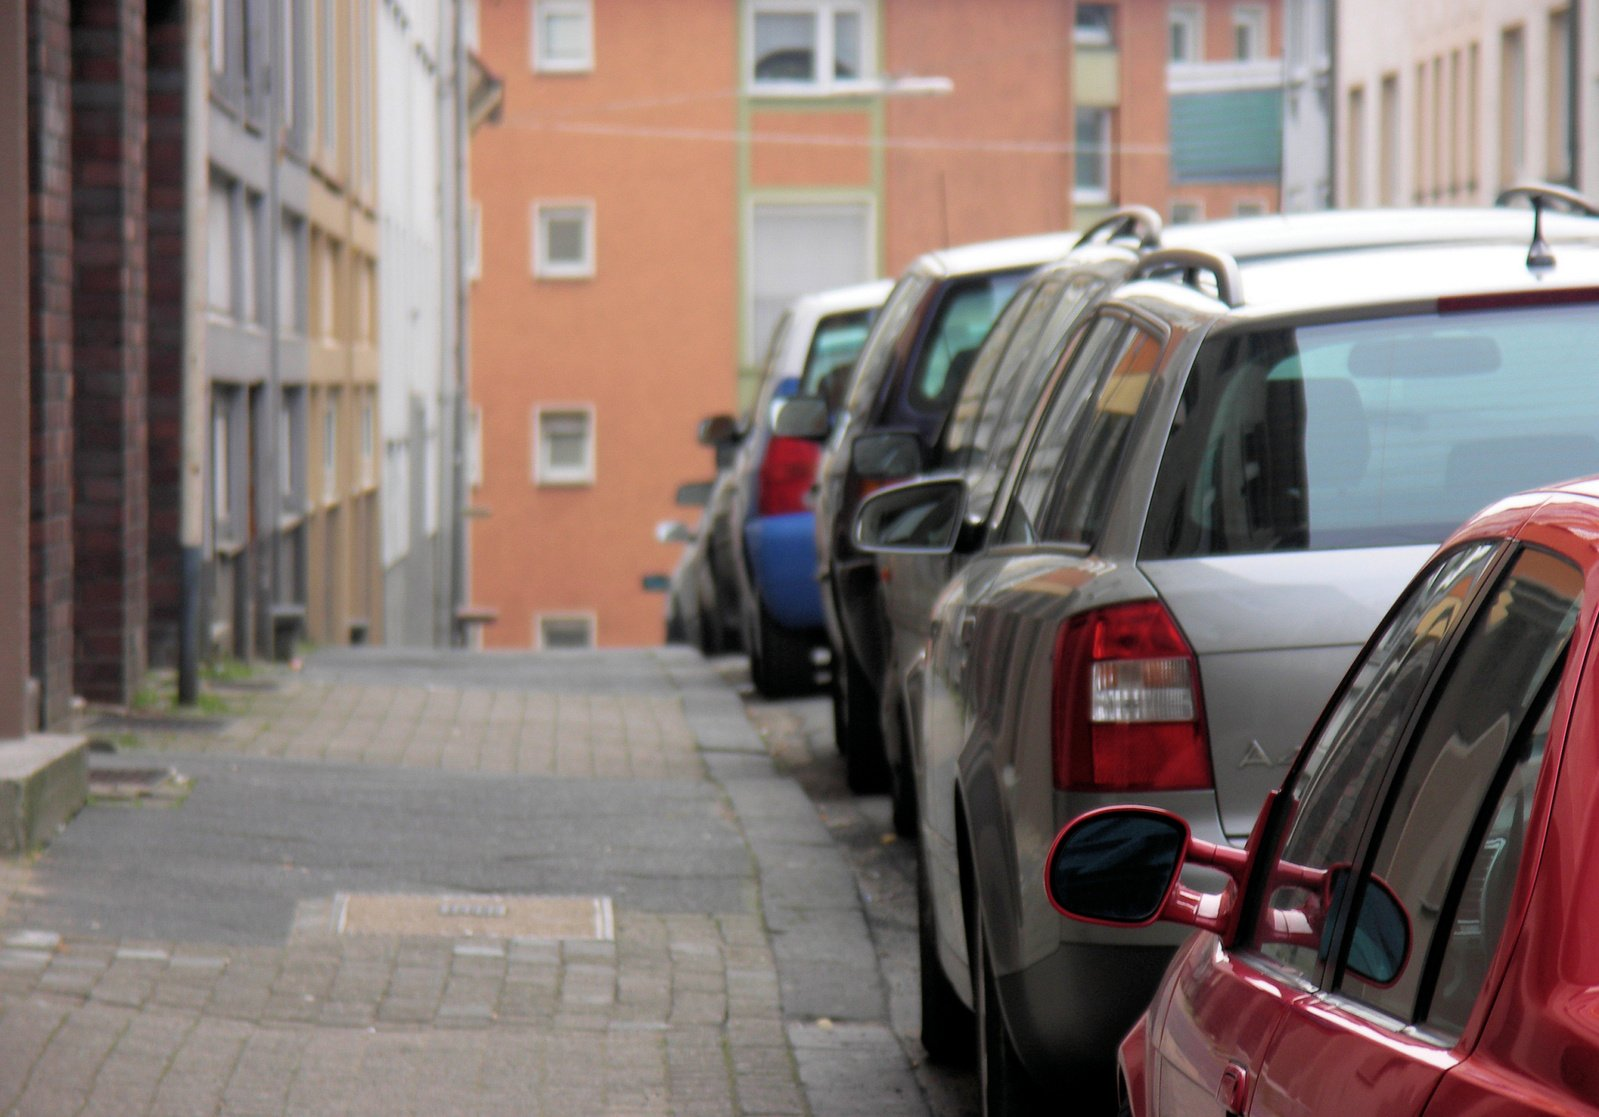 Cars Parked in Street